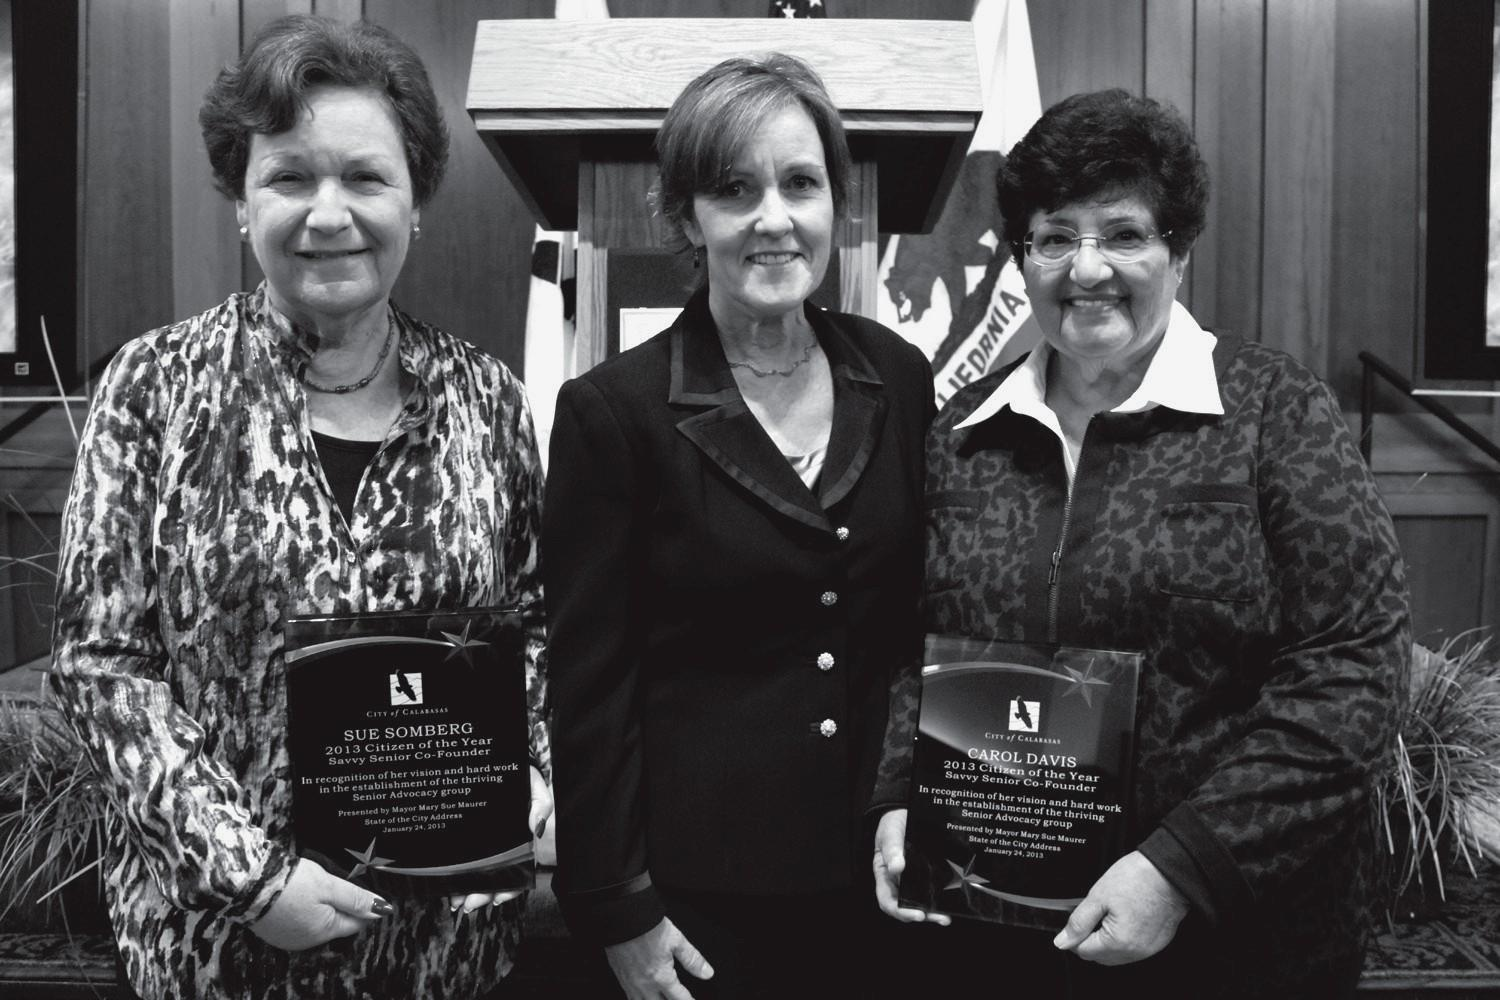 AWARDS—Mayor Mary Sue Maurer, middle, presents Sue Somberg, left, and Carol Davis with Citizens of the Year honors for their work in the Calabasas senior community.